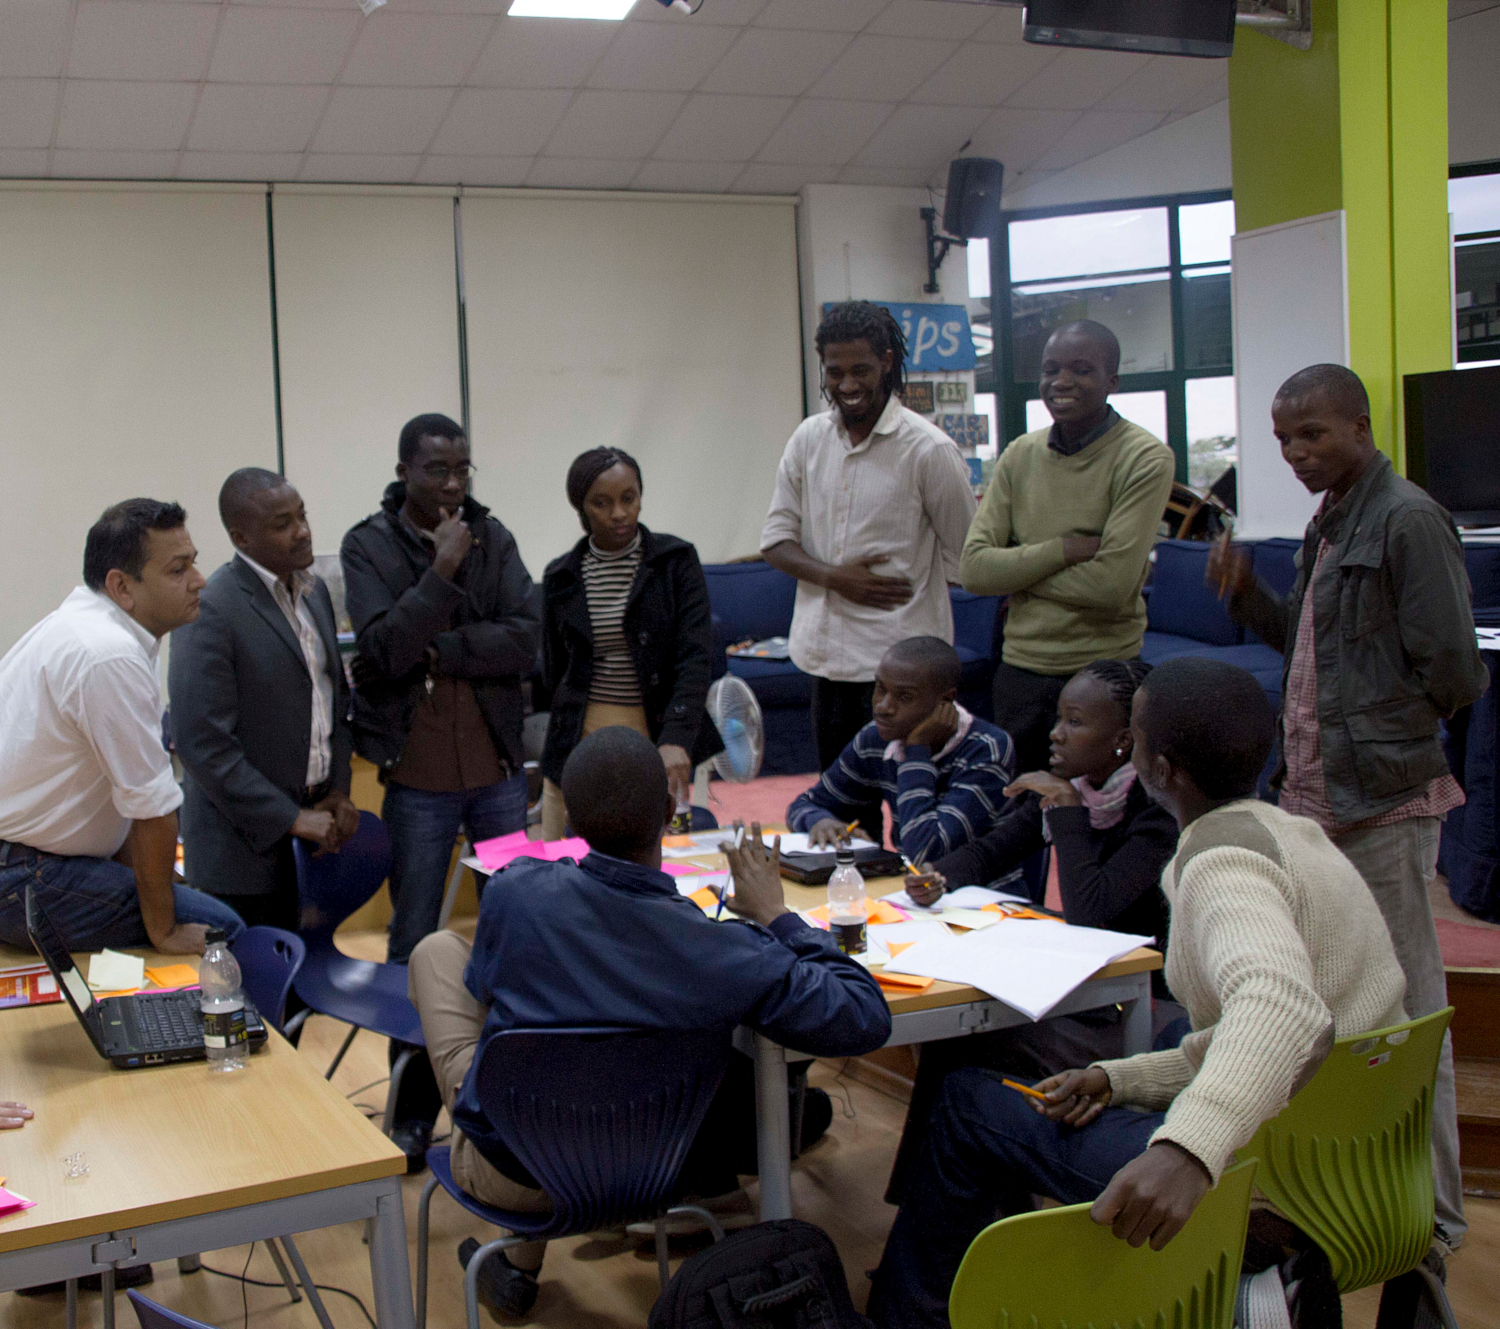 Intel Youth Enterprise seminar at The iHub (credits: The iHub / Flickr Creative Commons Attribution-NonCommercial 2.0 Generic (CC BY-NC 2.0))